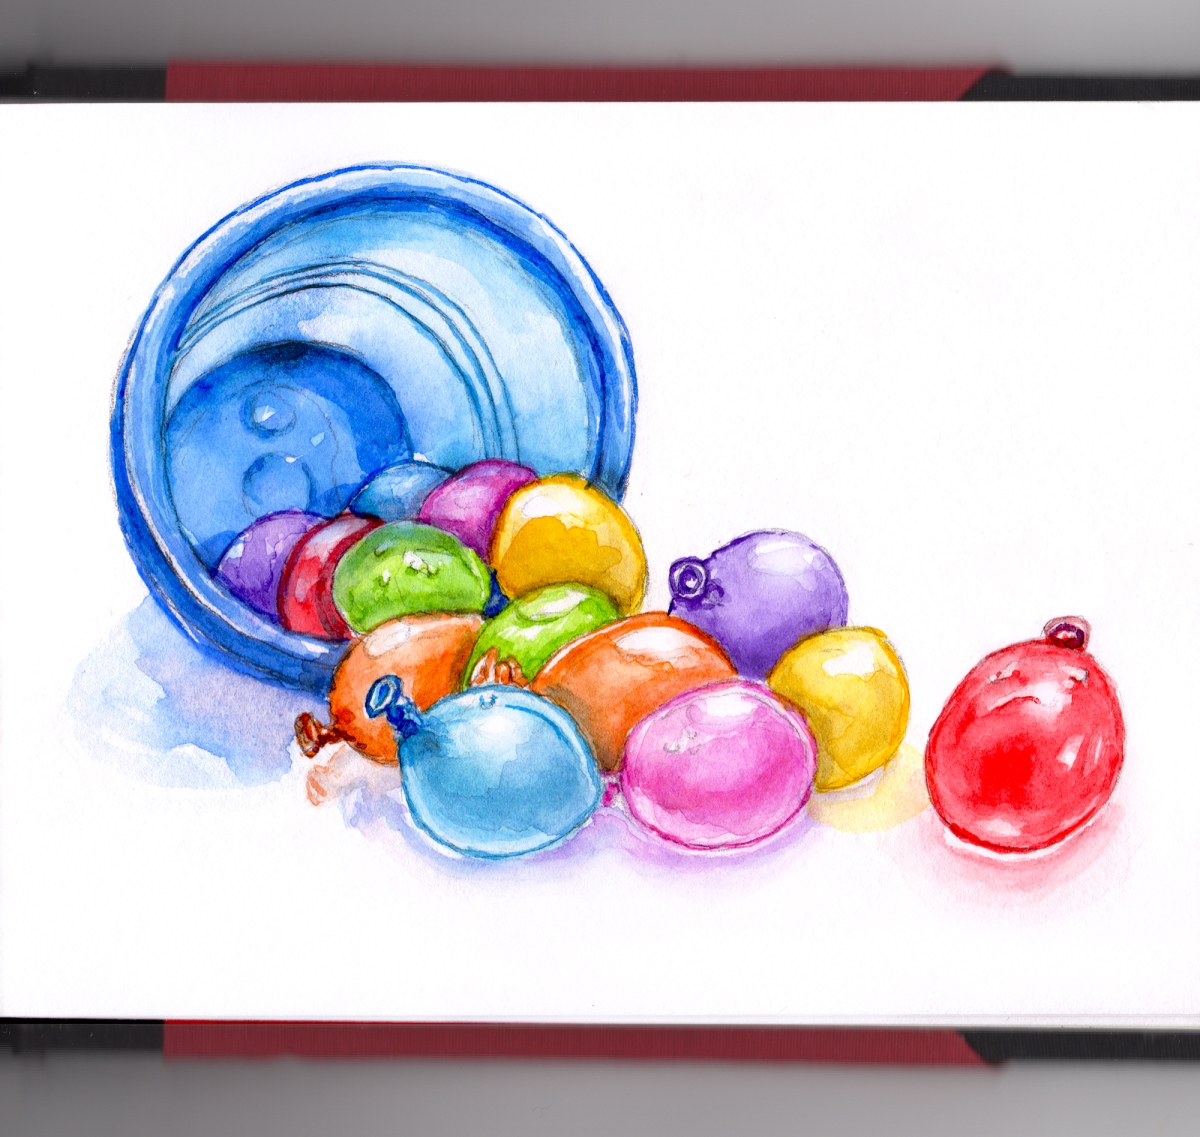 Day 7 - #WorldWatercolorGroup Water Balloon Fight bucket on white background